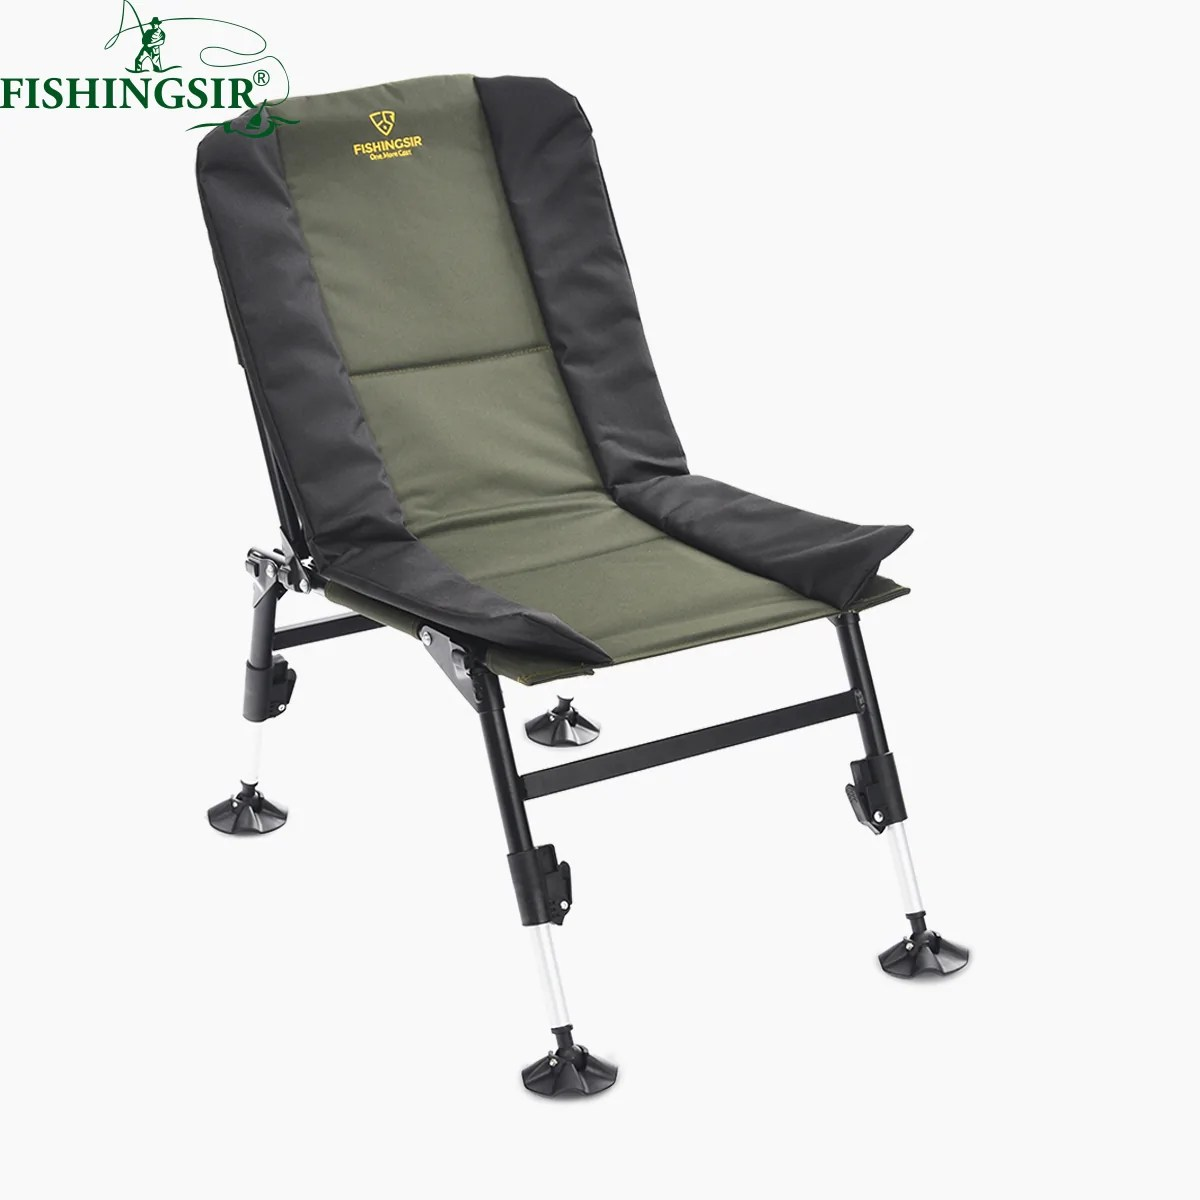 Folding Camp Chair Outdoor Portable Ultimate Breathable Folding Camping Chairs W Adjustable Legs